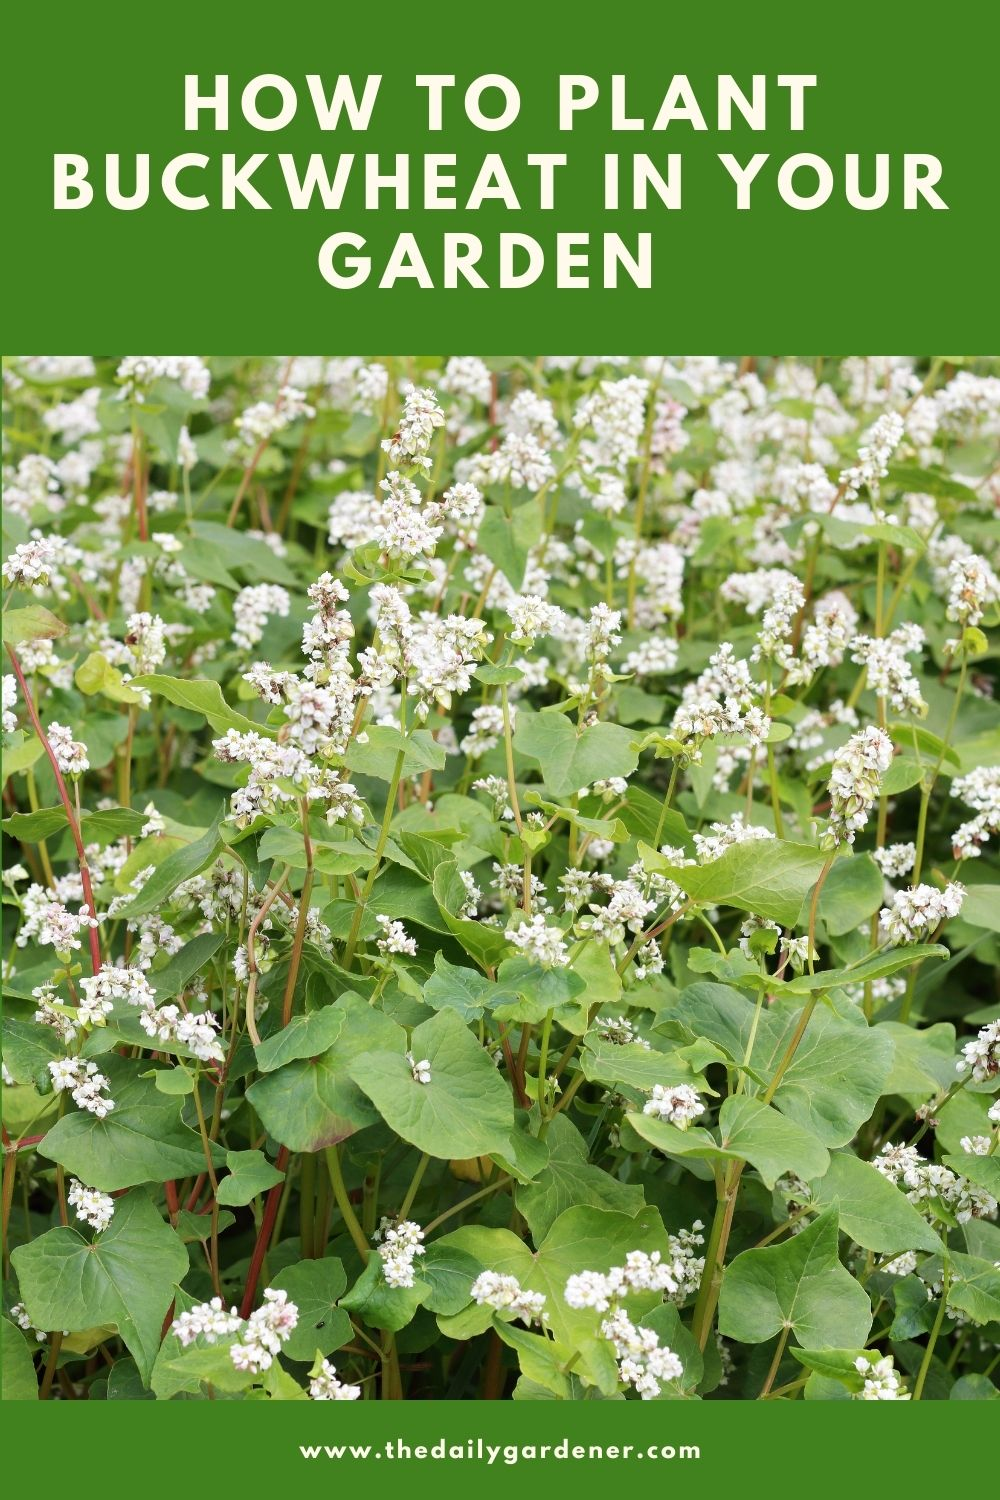 How to Plant Buckwheat in Your Garden 2